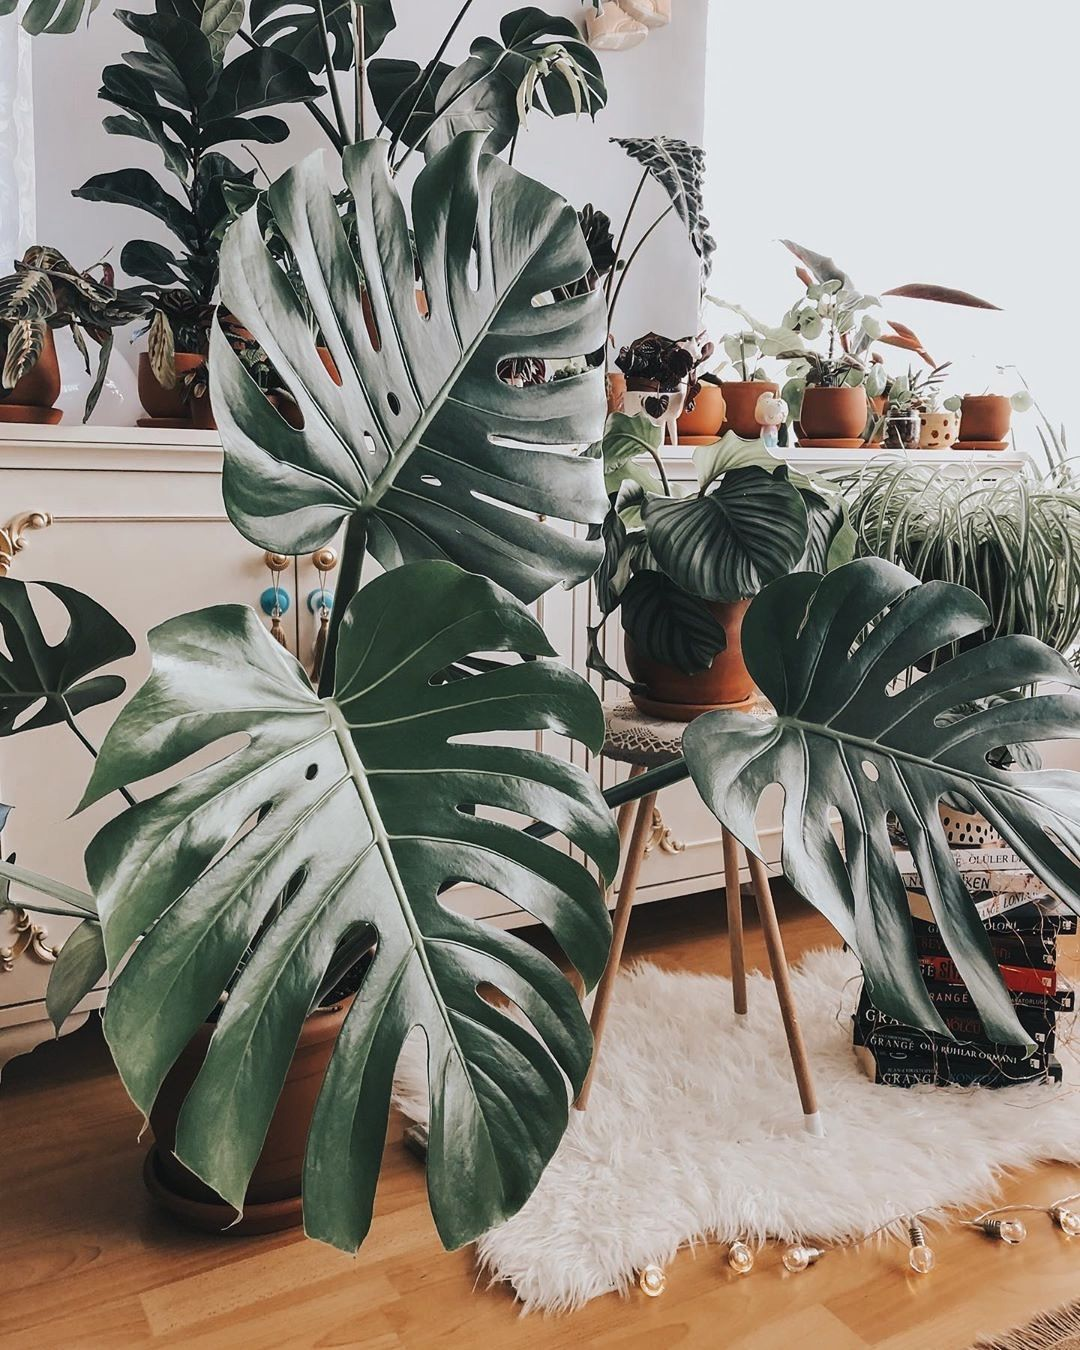 Monstera care tips